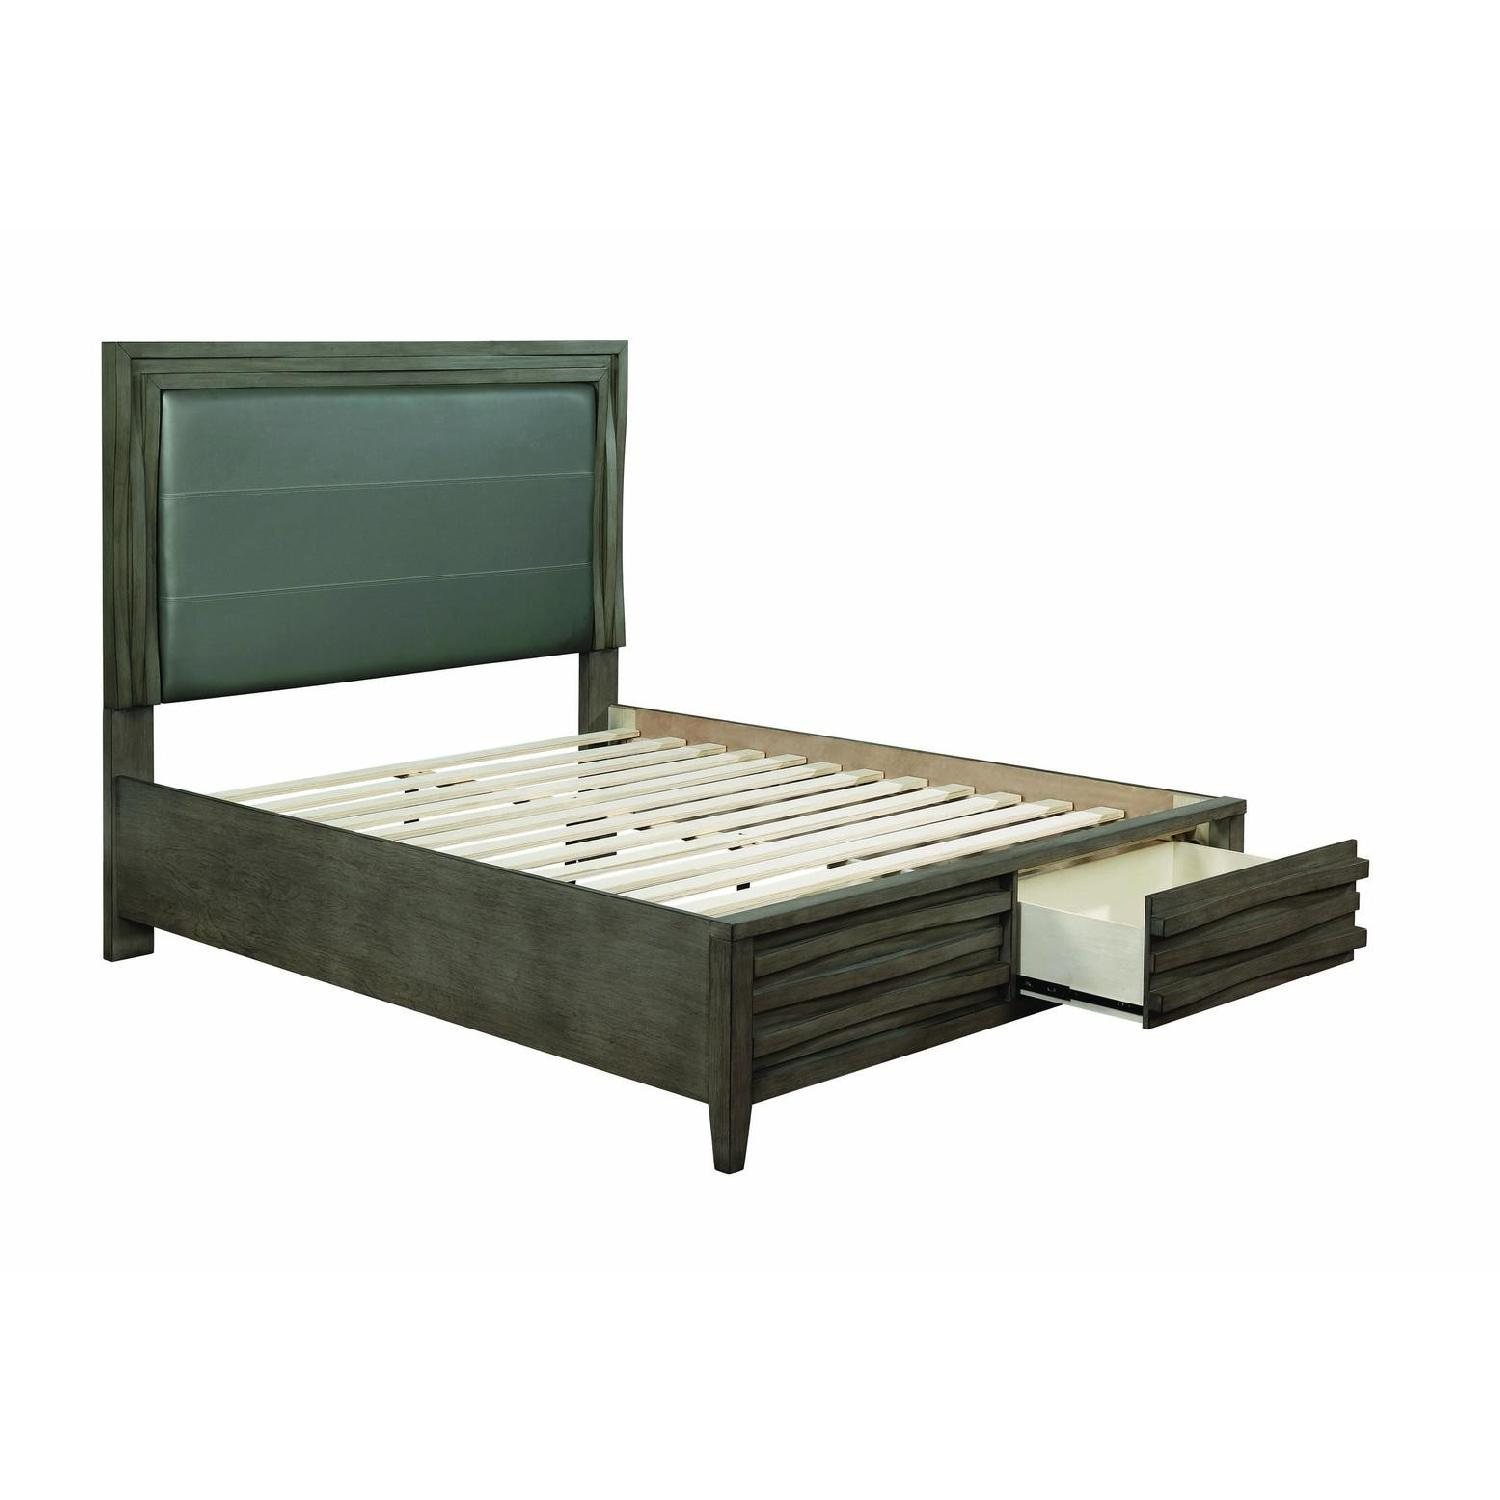 Queen Bed in Dark Taupe w/ 2 Storage Drawers - image-3